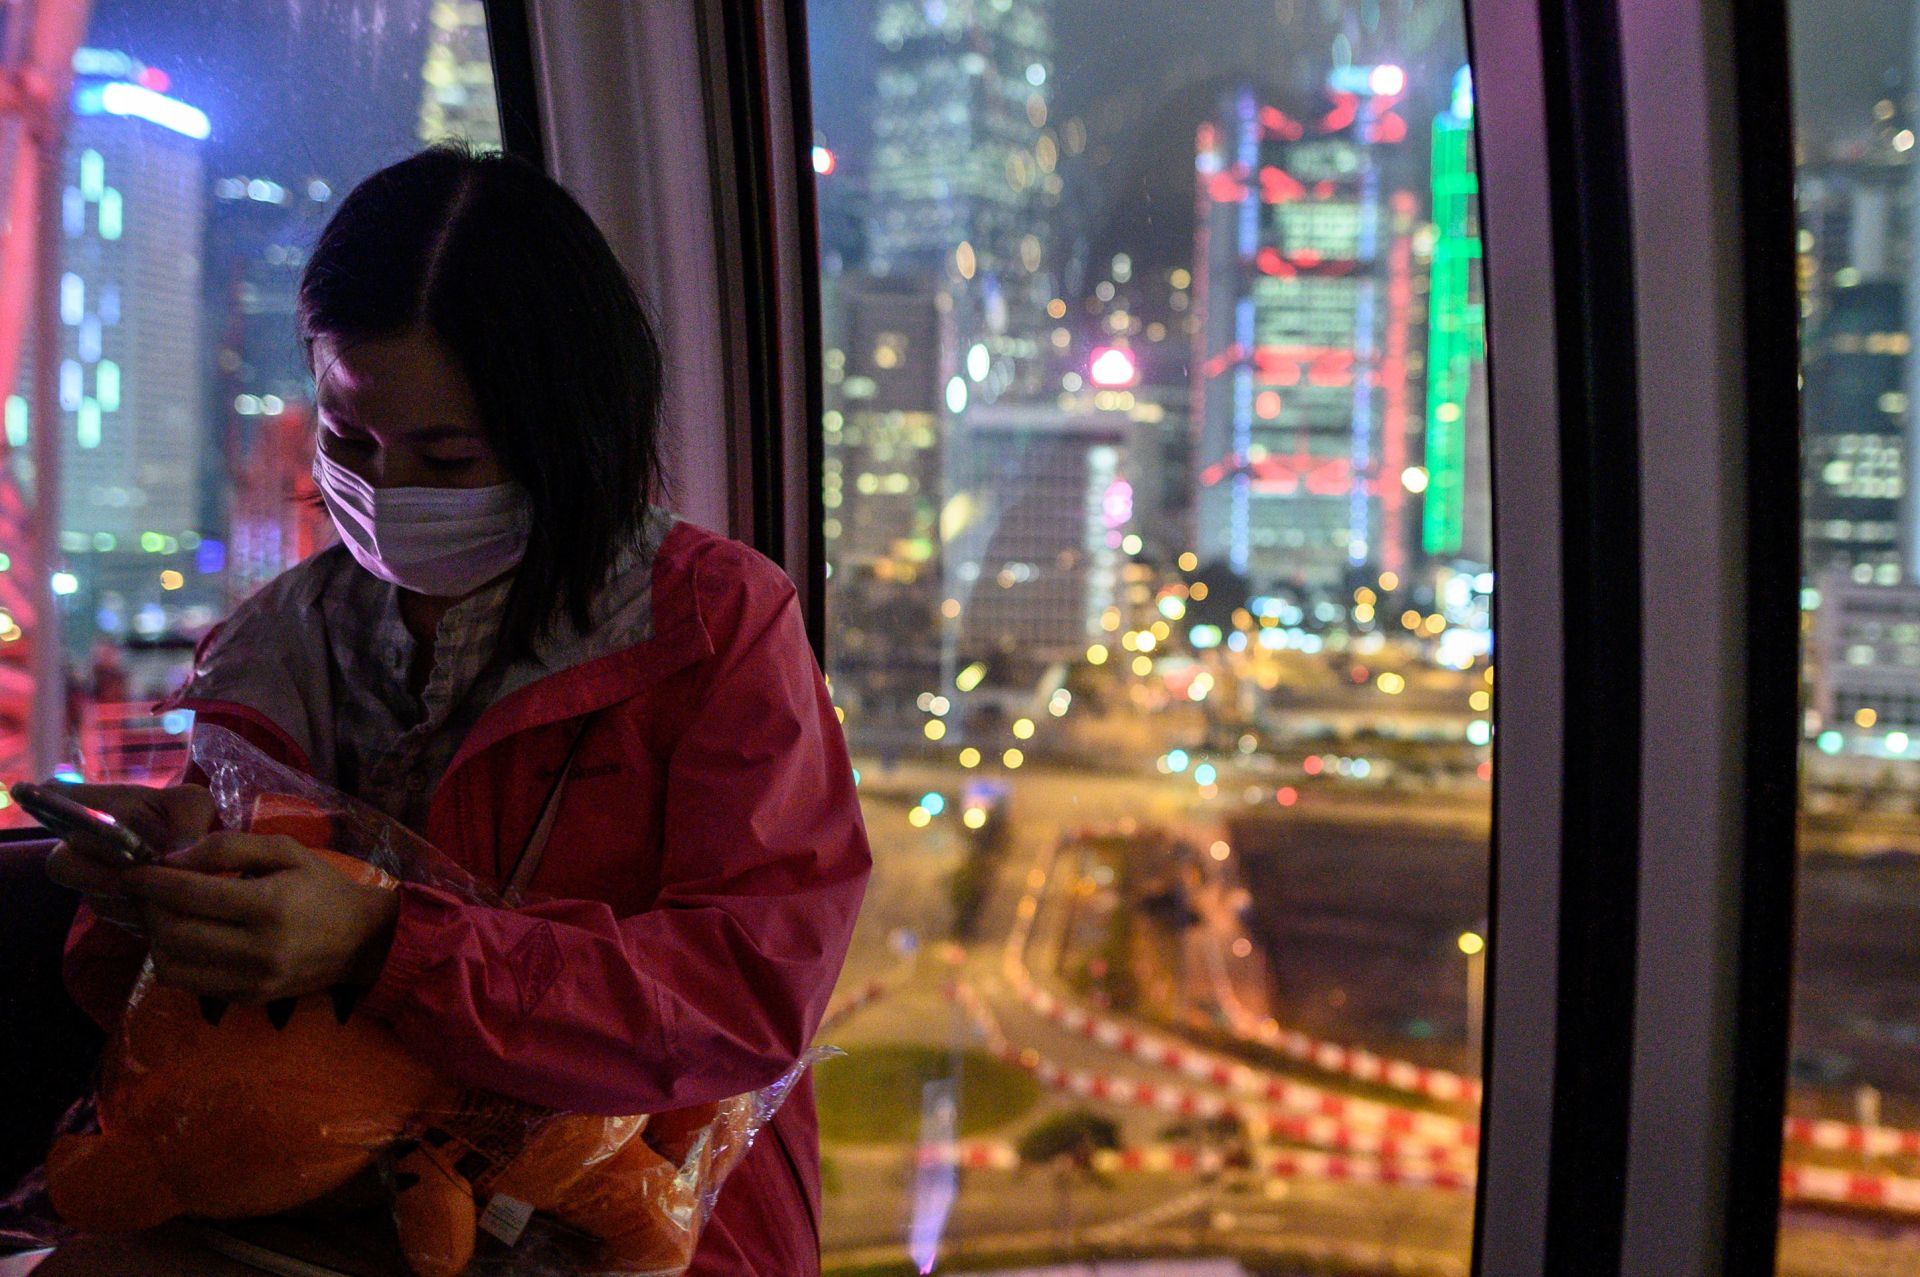 A woman wears a face mask as a preventative measure against the COVID-19 coronavirus, as she sits inside a cabin of the ferris wheel in Central district of Hong Kong on February 14, 2020. - The death toll from China's virus epidemic neared 1,400 on Friday with six medical workers among the victims, underscoring the country's struggle to contain a deepening health crisis. (Photo by Philip FONG / AFP)